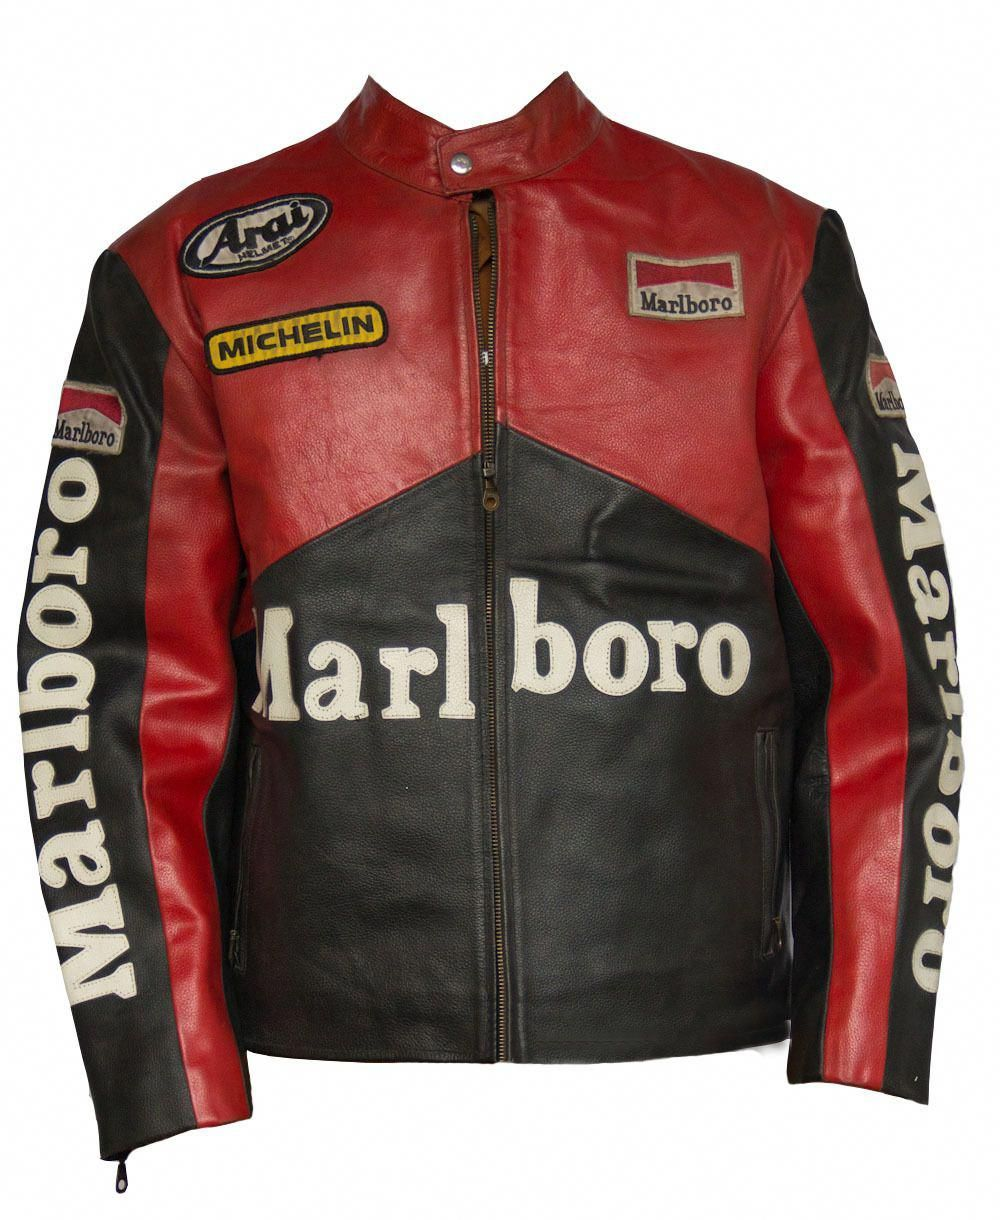 Men Marlboro Racing Motorcycle Jacket Leather Red And Black Safety Protection Lead Style Leatherjacketsformengreen Giacca Di Pelle Giacca Outfit